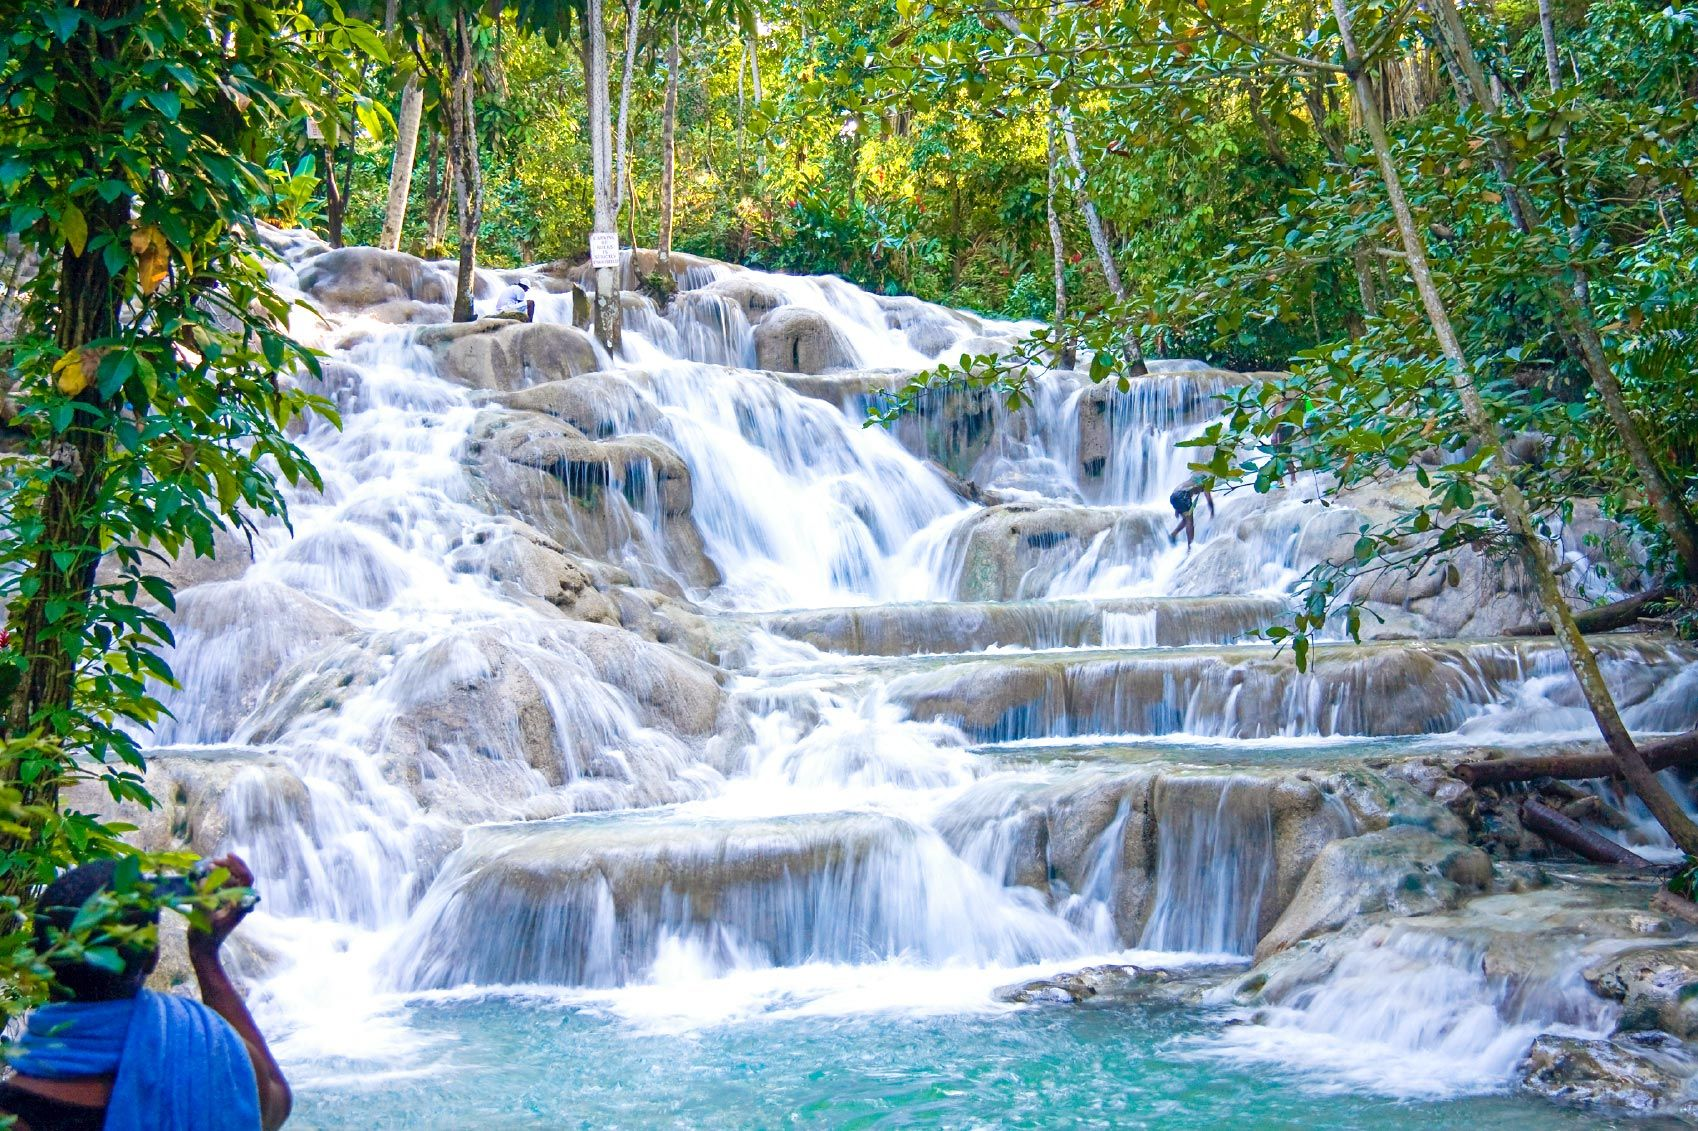 Dunn's River Falls: The Complete Guide